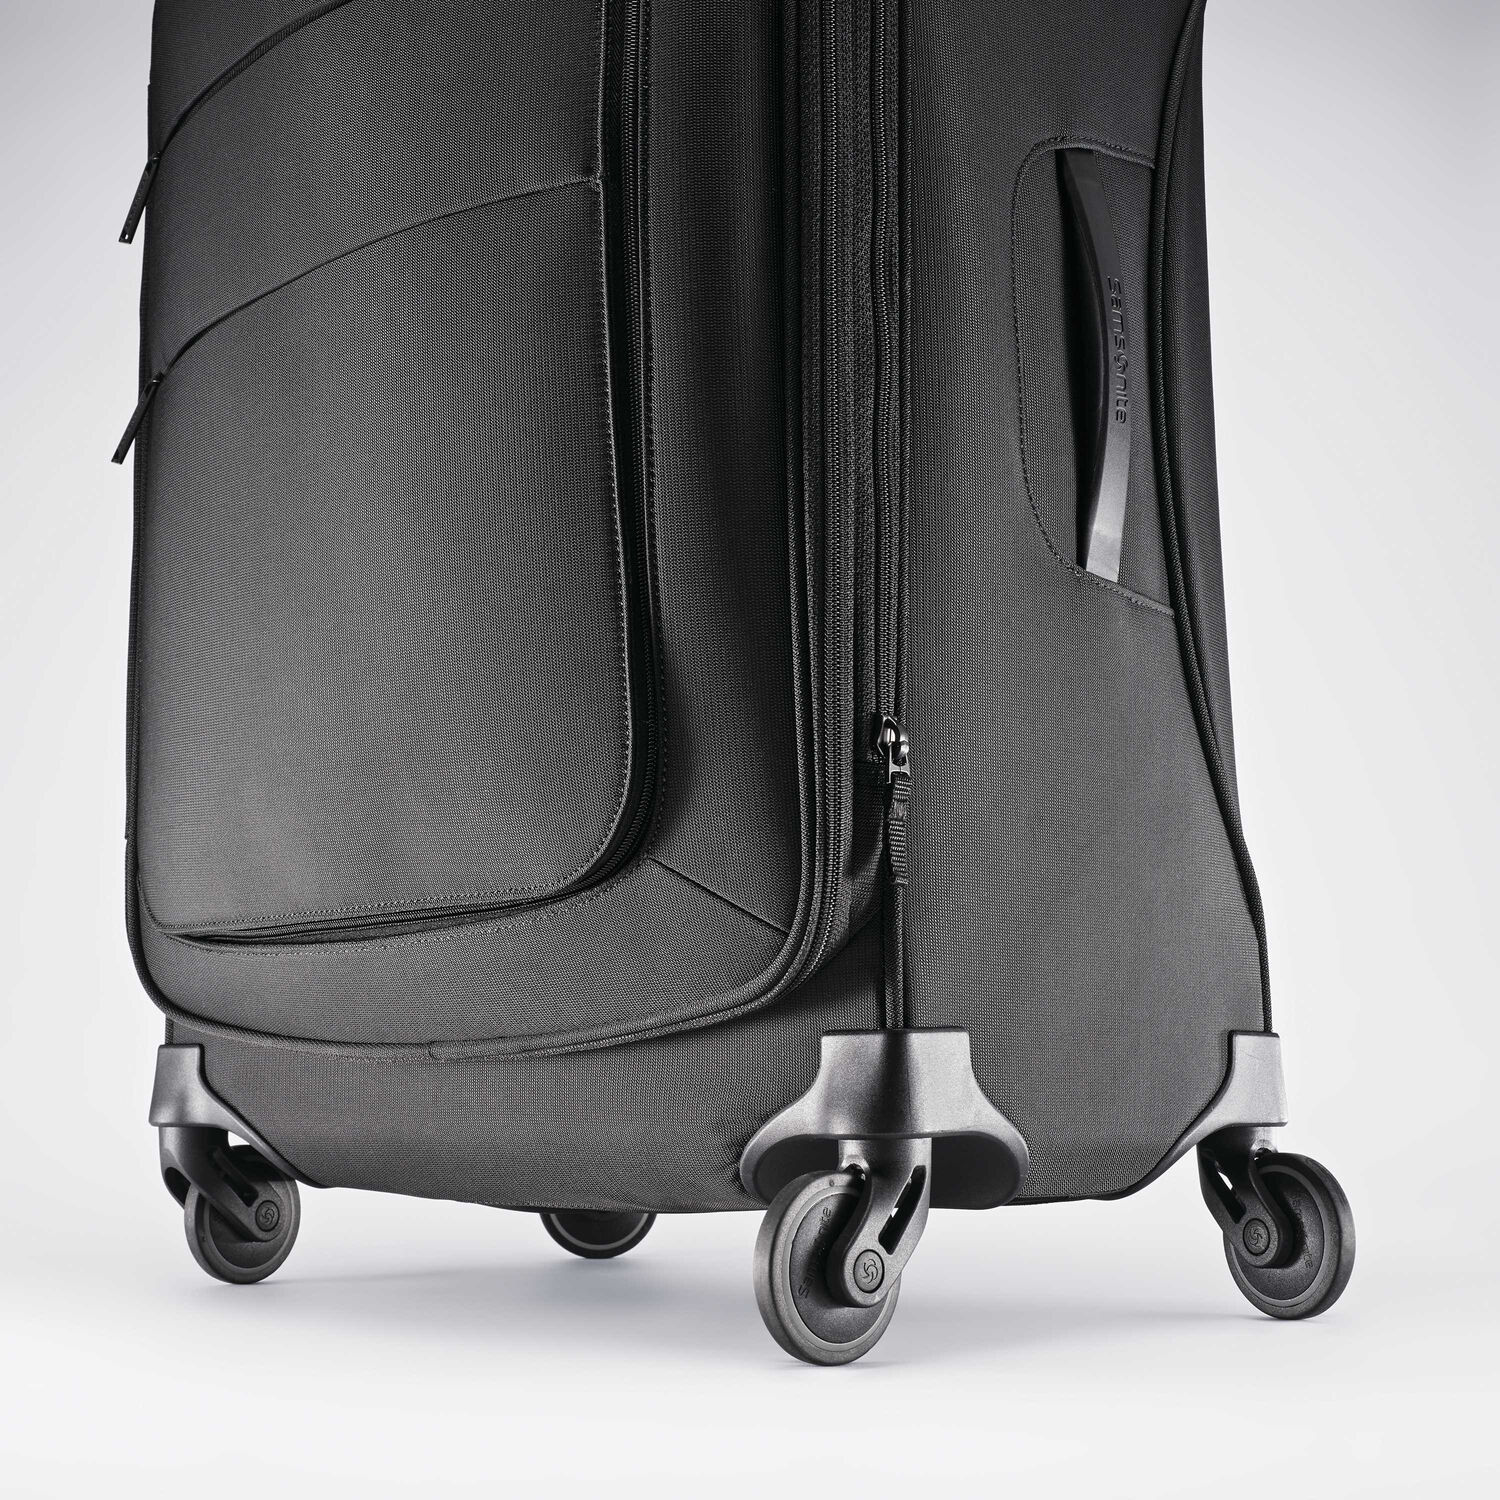 5a8b08183e26b Samsonite Flexis 19 quot  Spinner in the color Jet ...